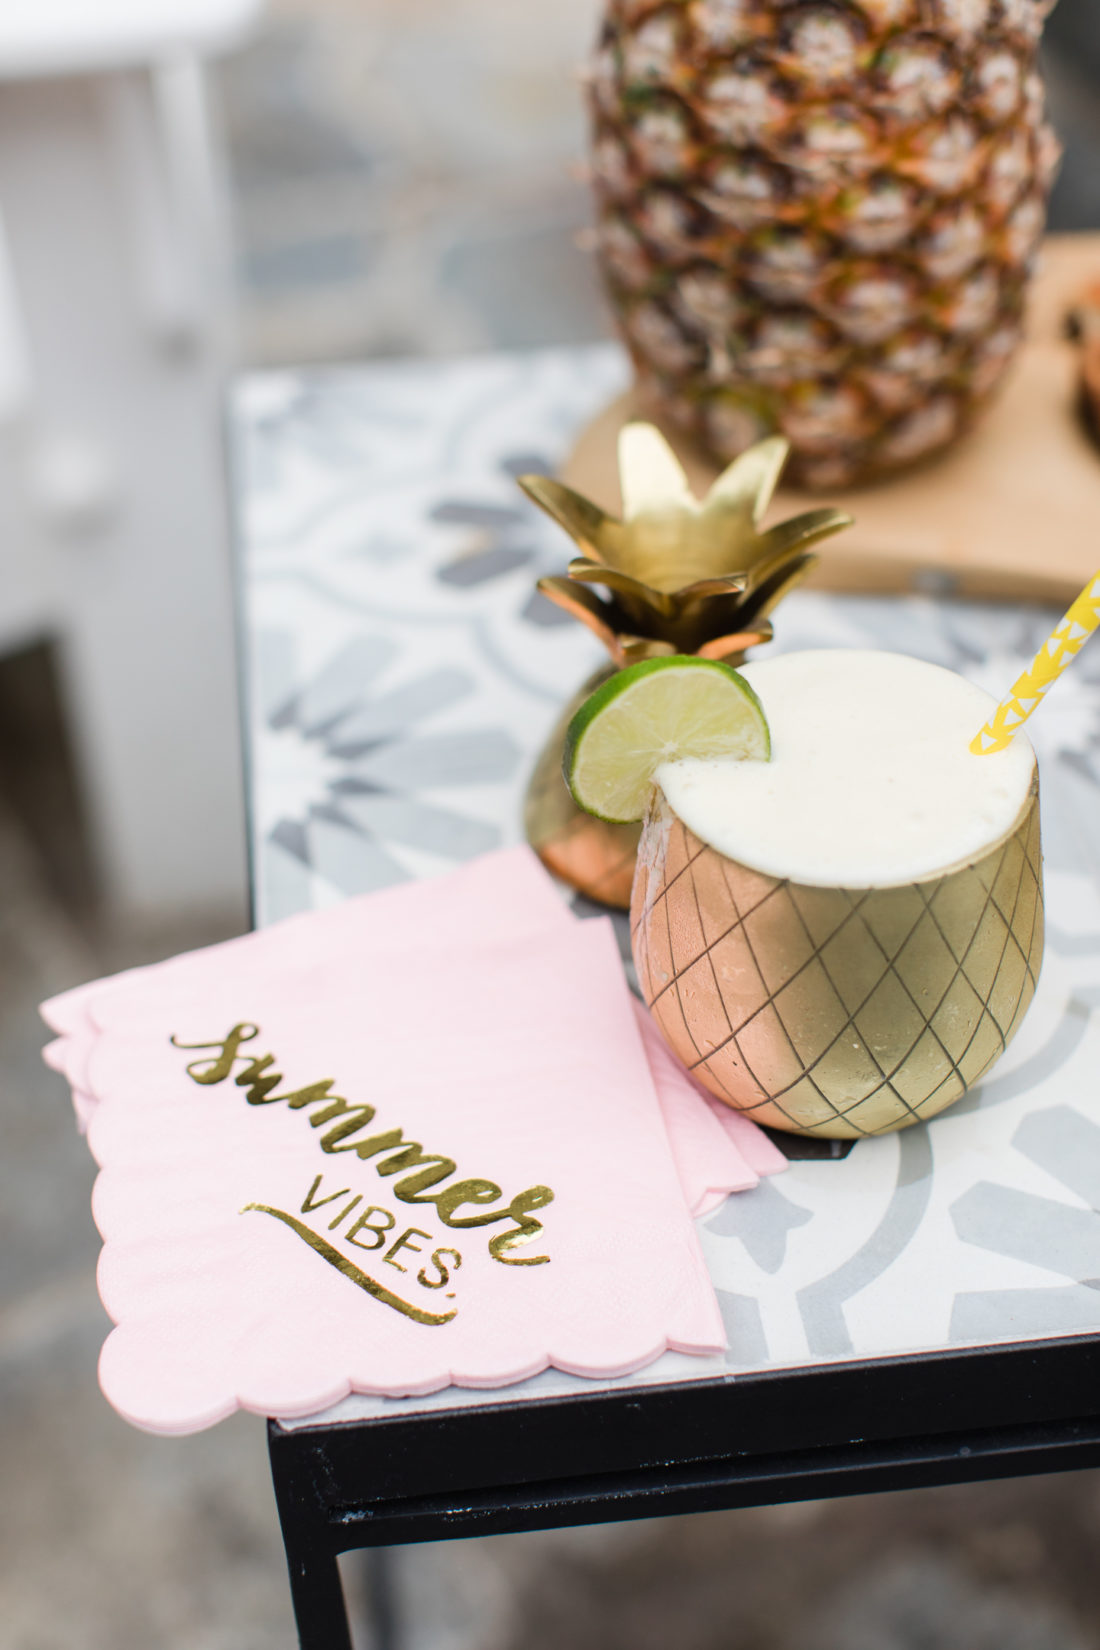 Eva Amurri Martino serves up a frozen pineapple daquiri at her Pineapple themed Happy Hour